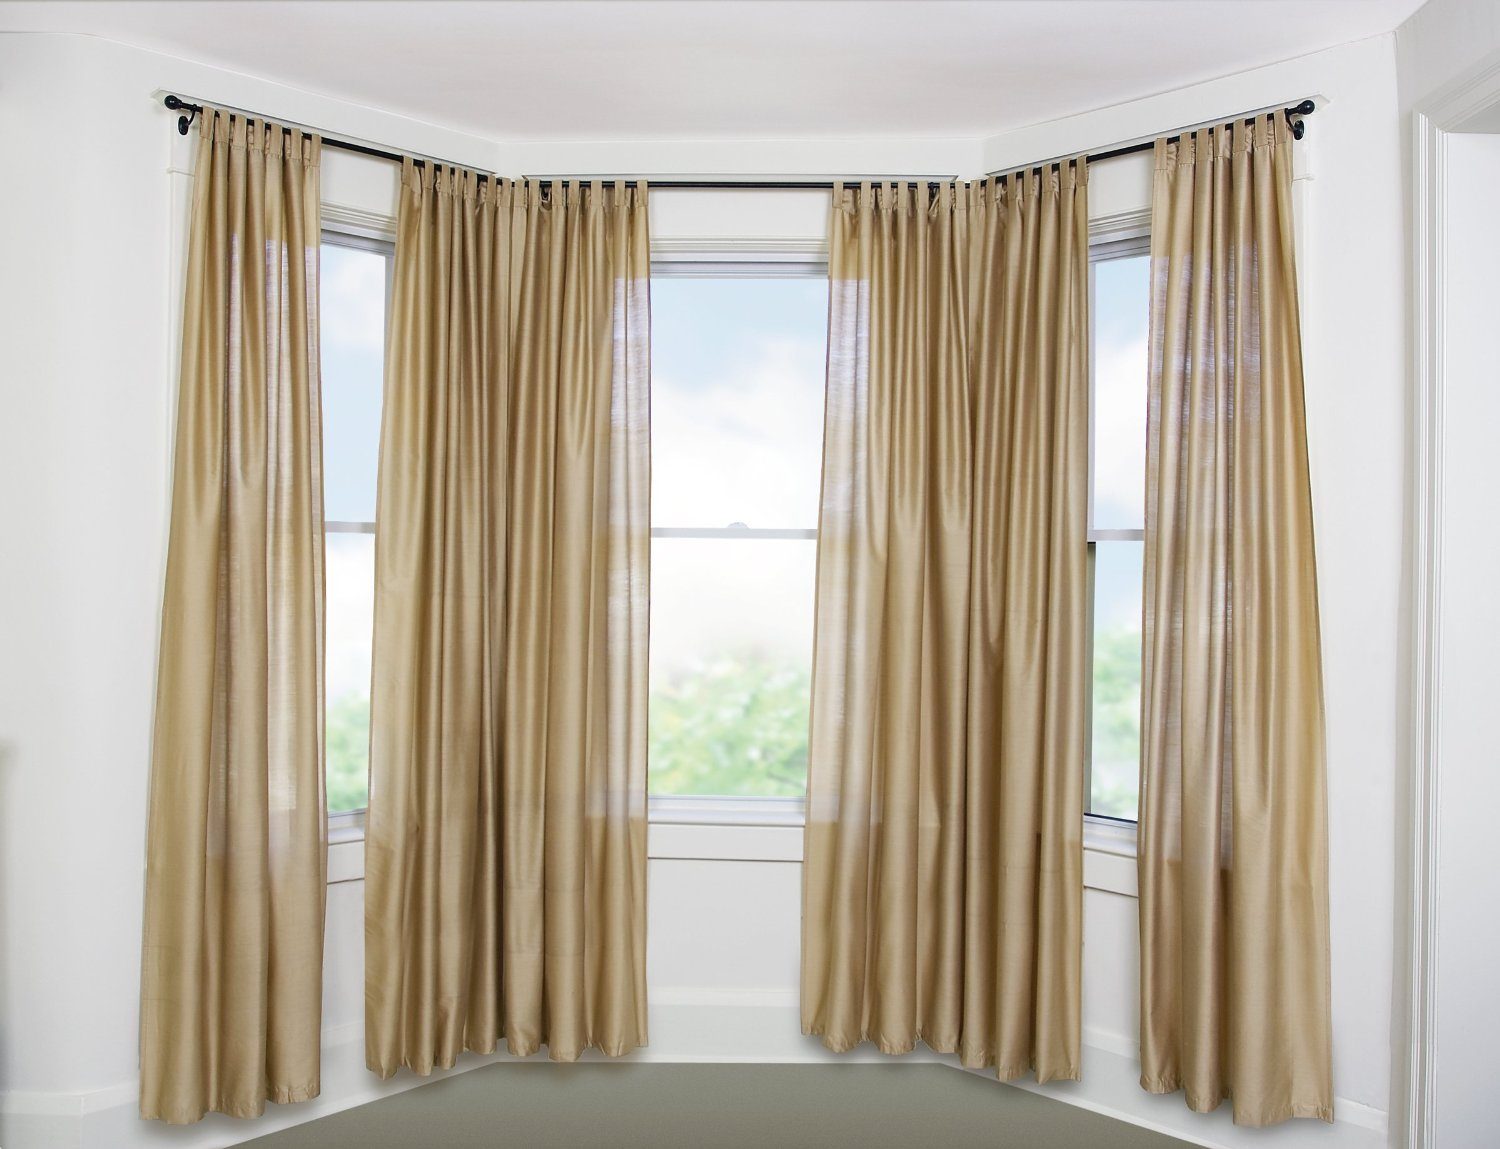 Bay Window Curtains : Curtain rods for bay windows homesfeed